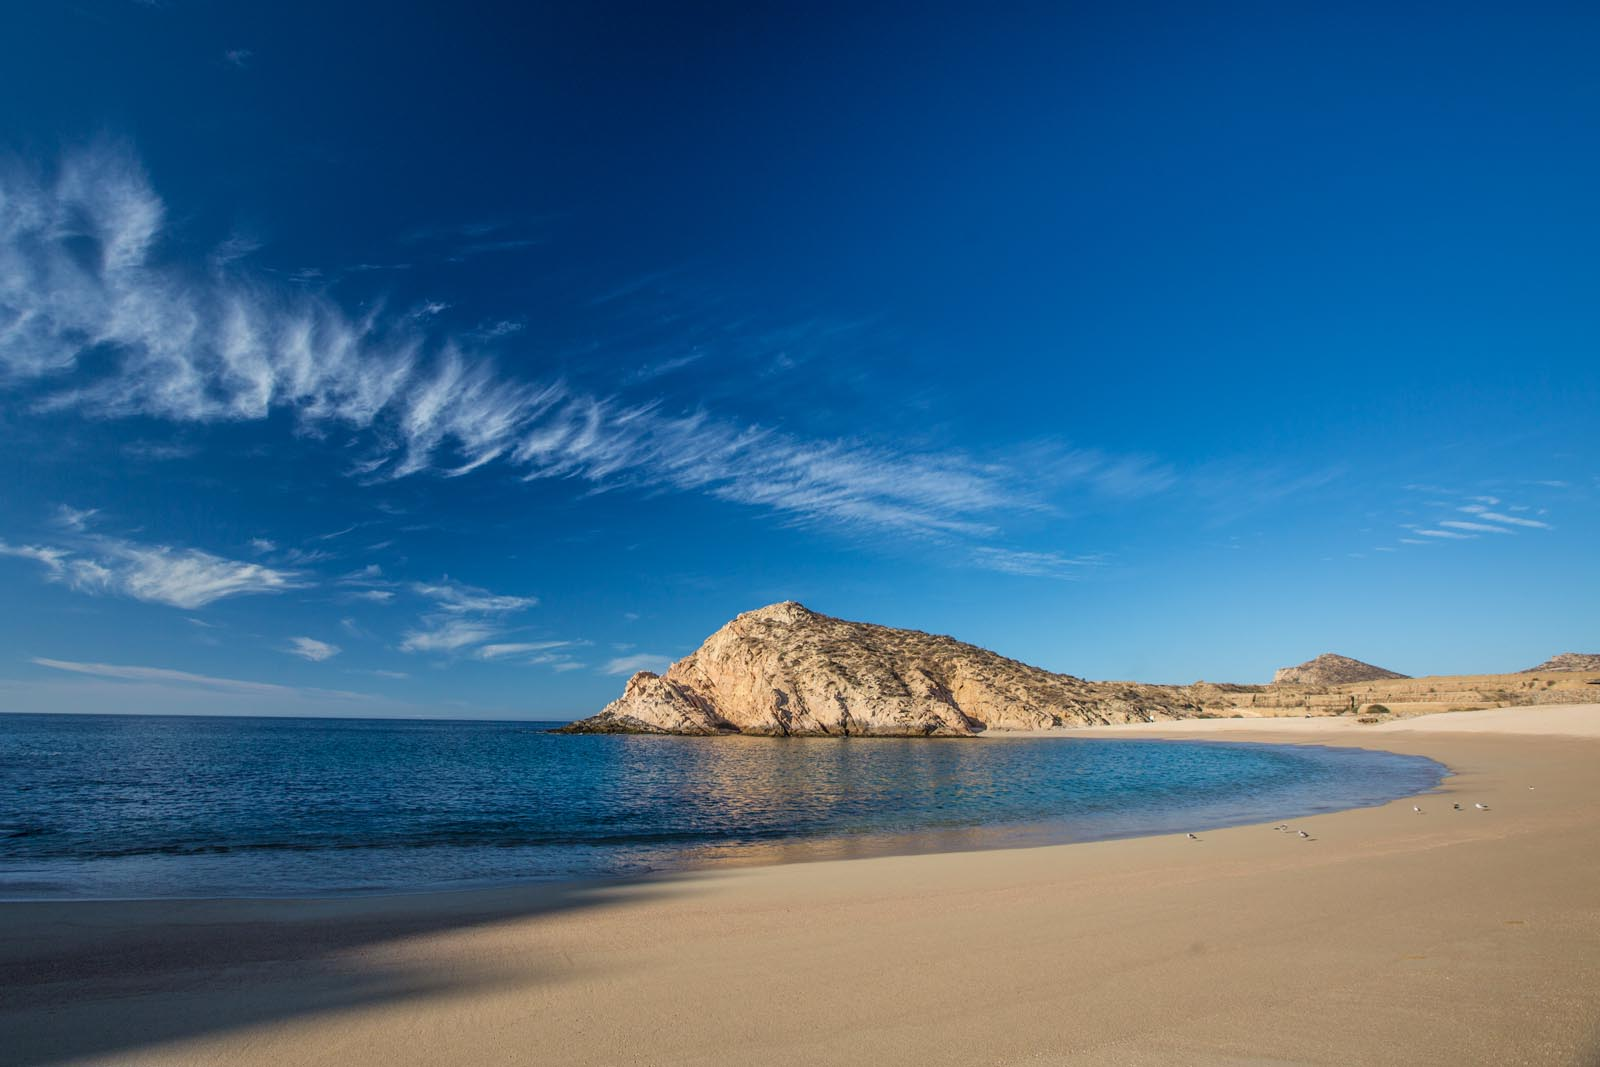 Our very own secluded beach for camping close to Cabo. If we had found out about it sooner, we may never have left this place, although the water is still much warmer back in La Paz.